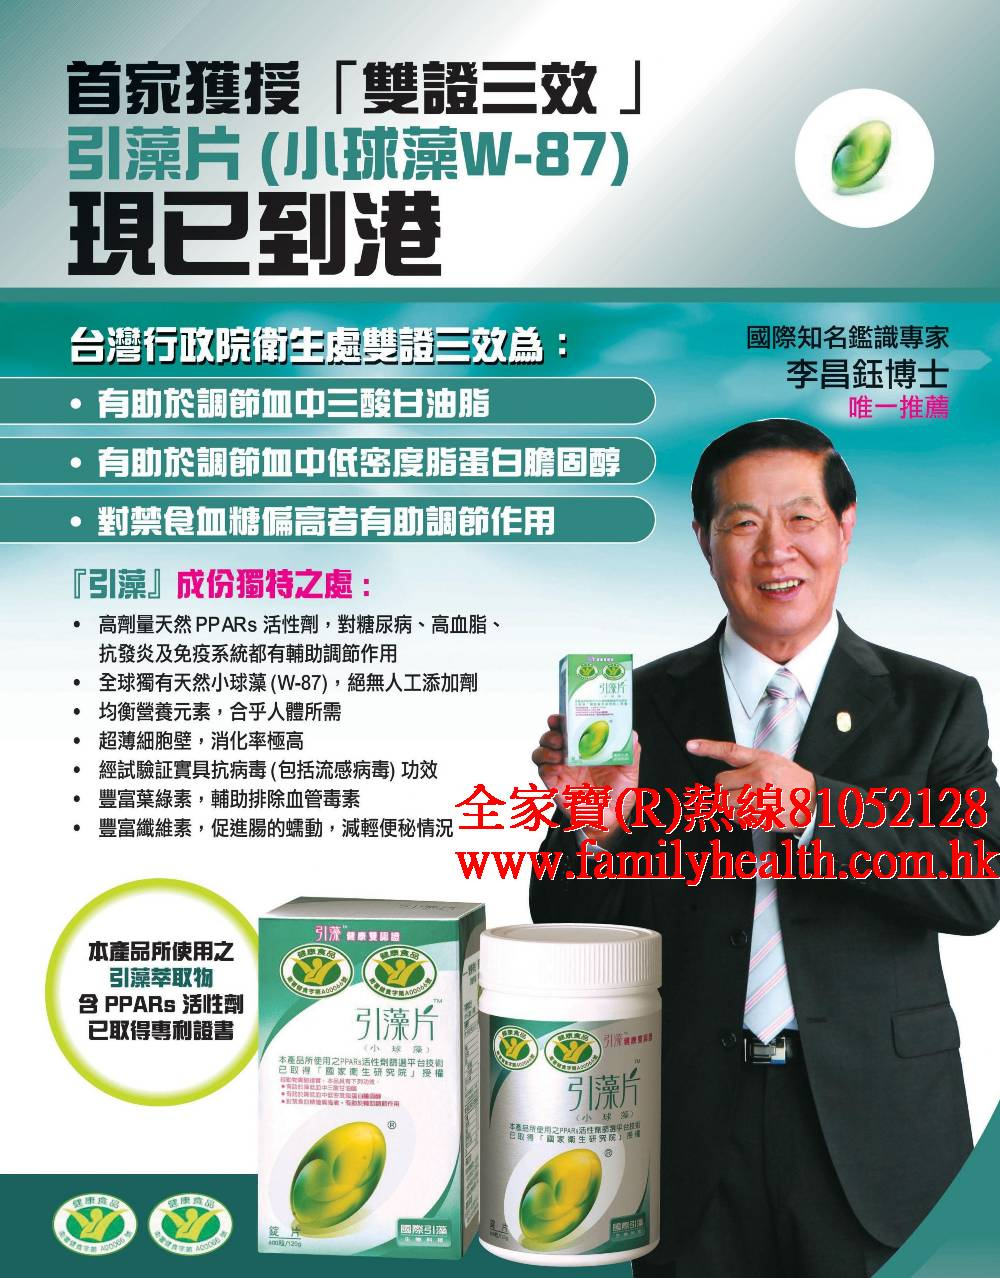 http://www.familyhealth.com.hk/files/full/926_4.jpg